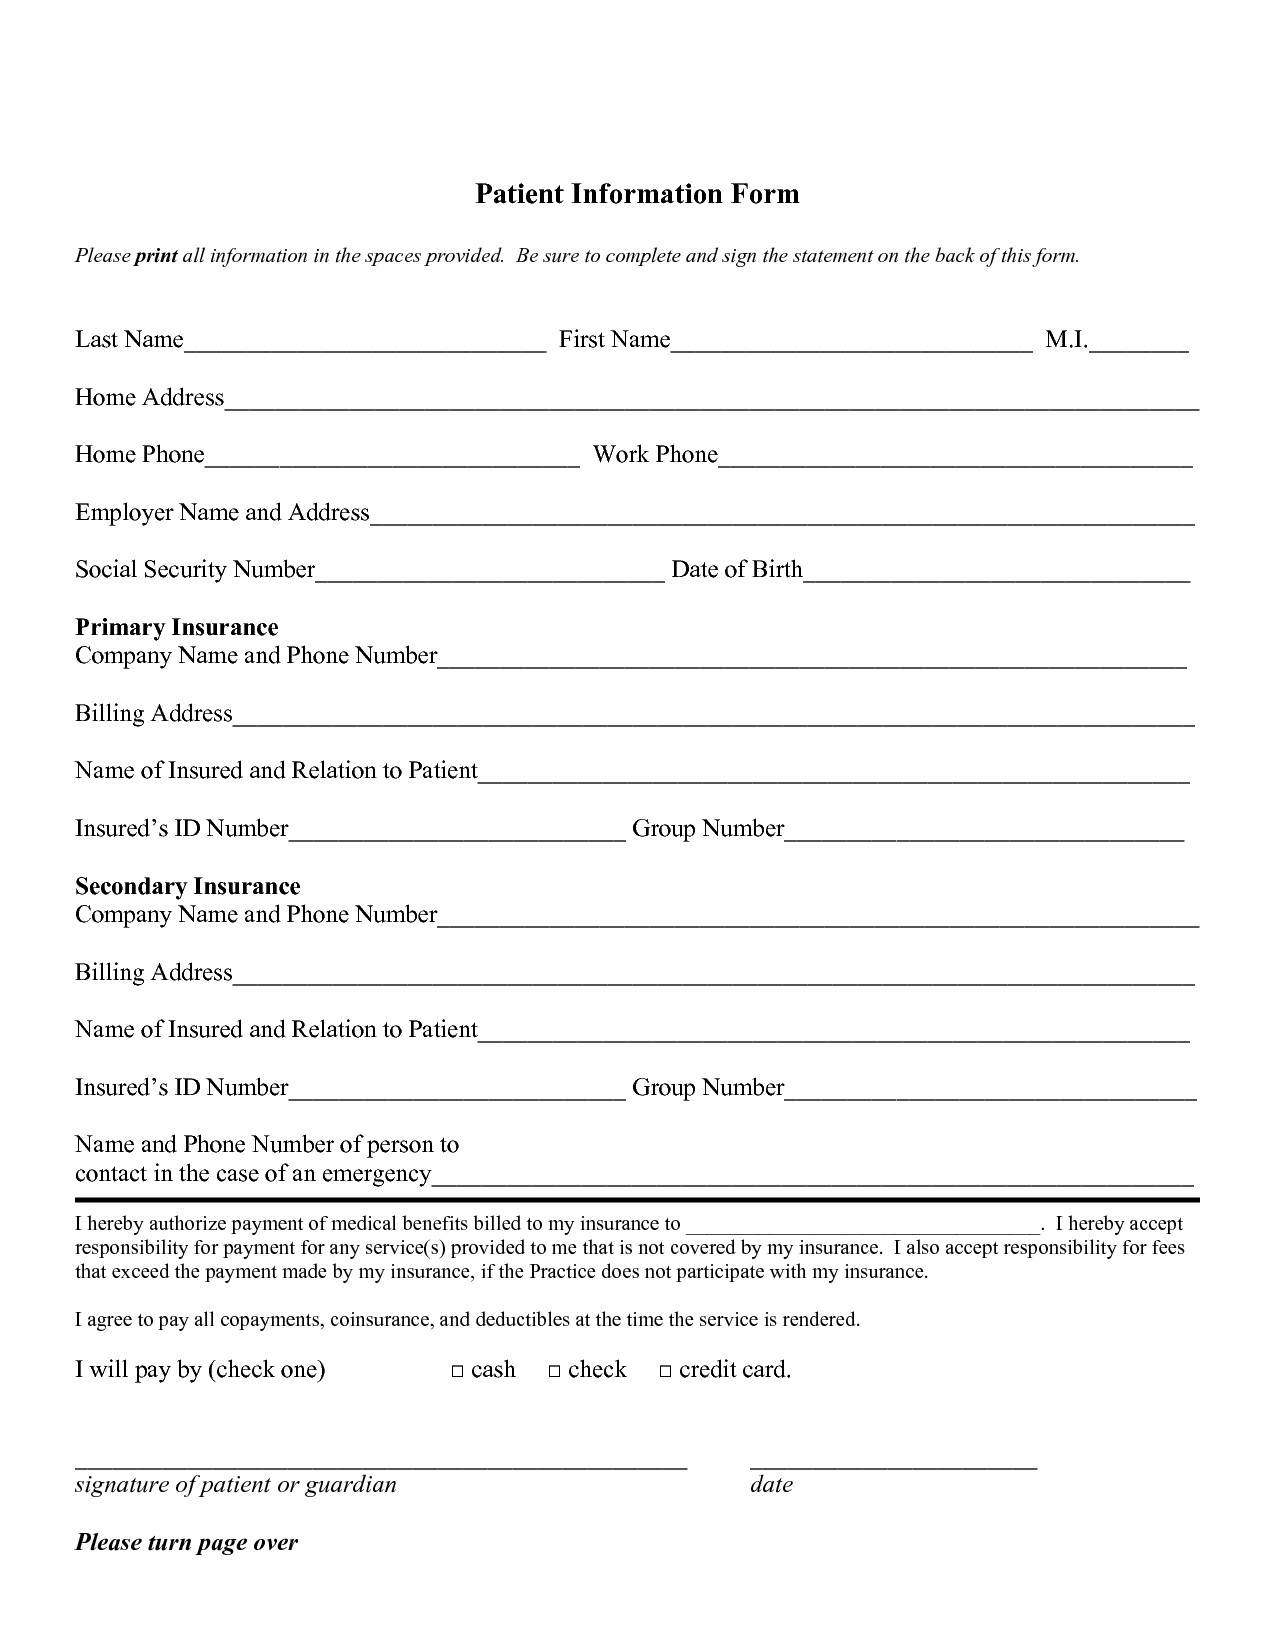 Patient Information form Template Free Personal Information forms